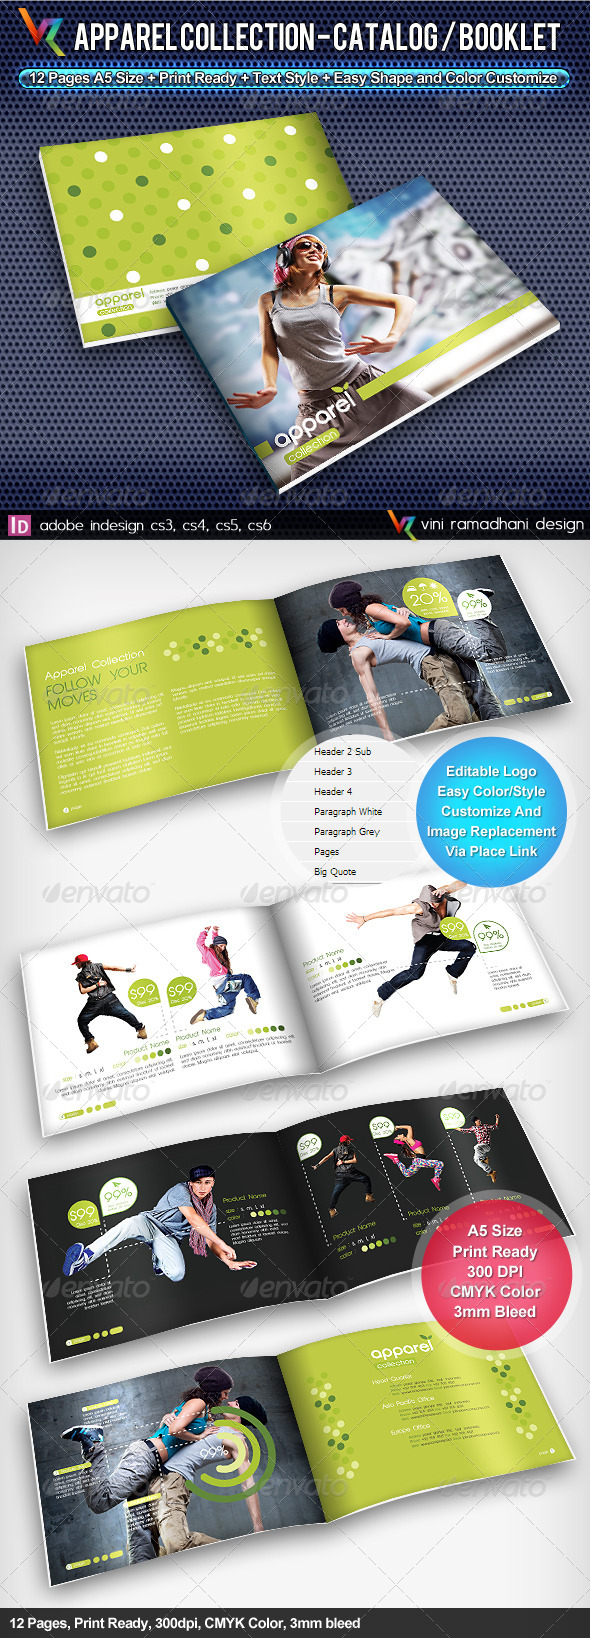 GraphicRiver Apparel Collection Catalog/Brochure 4087611